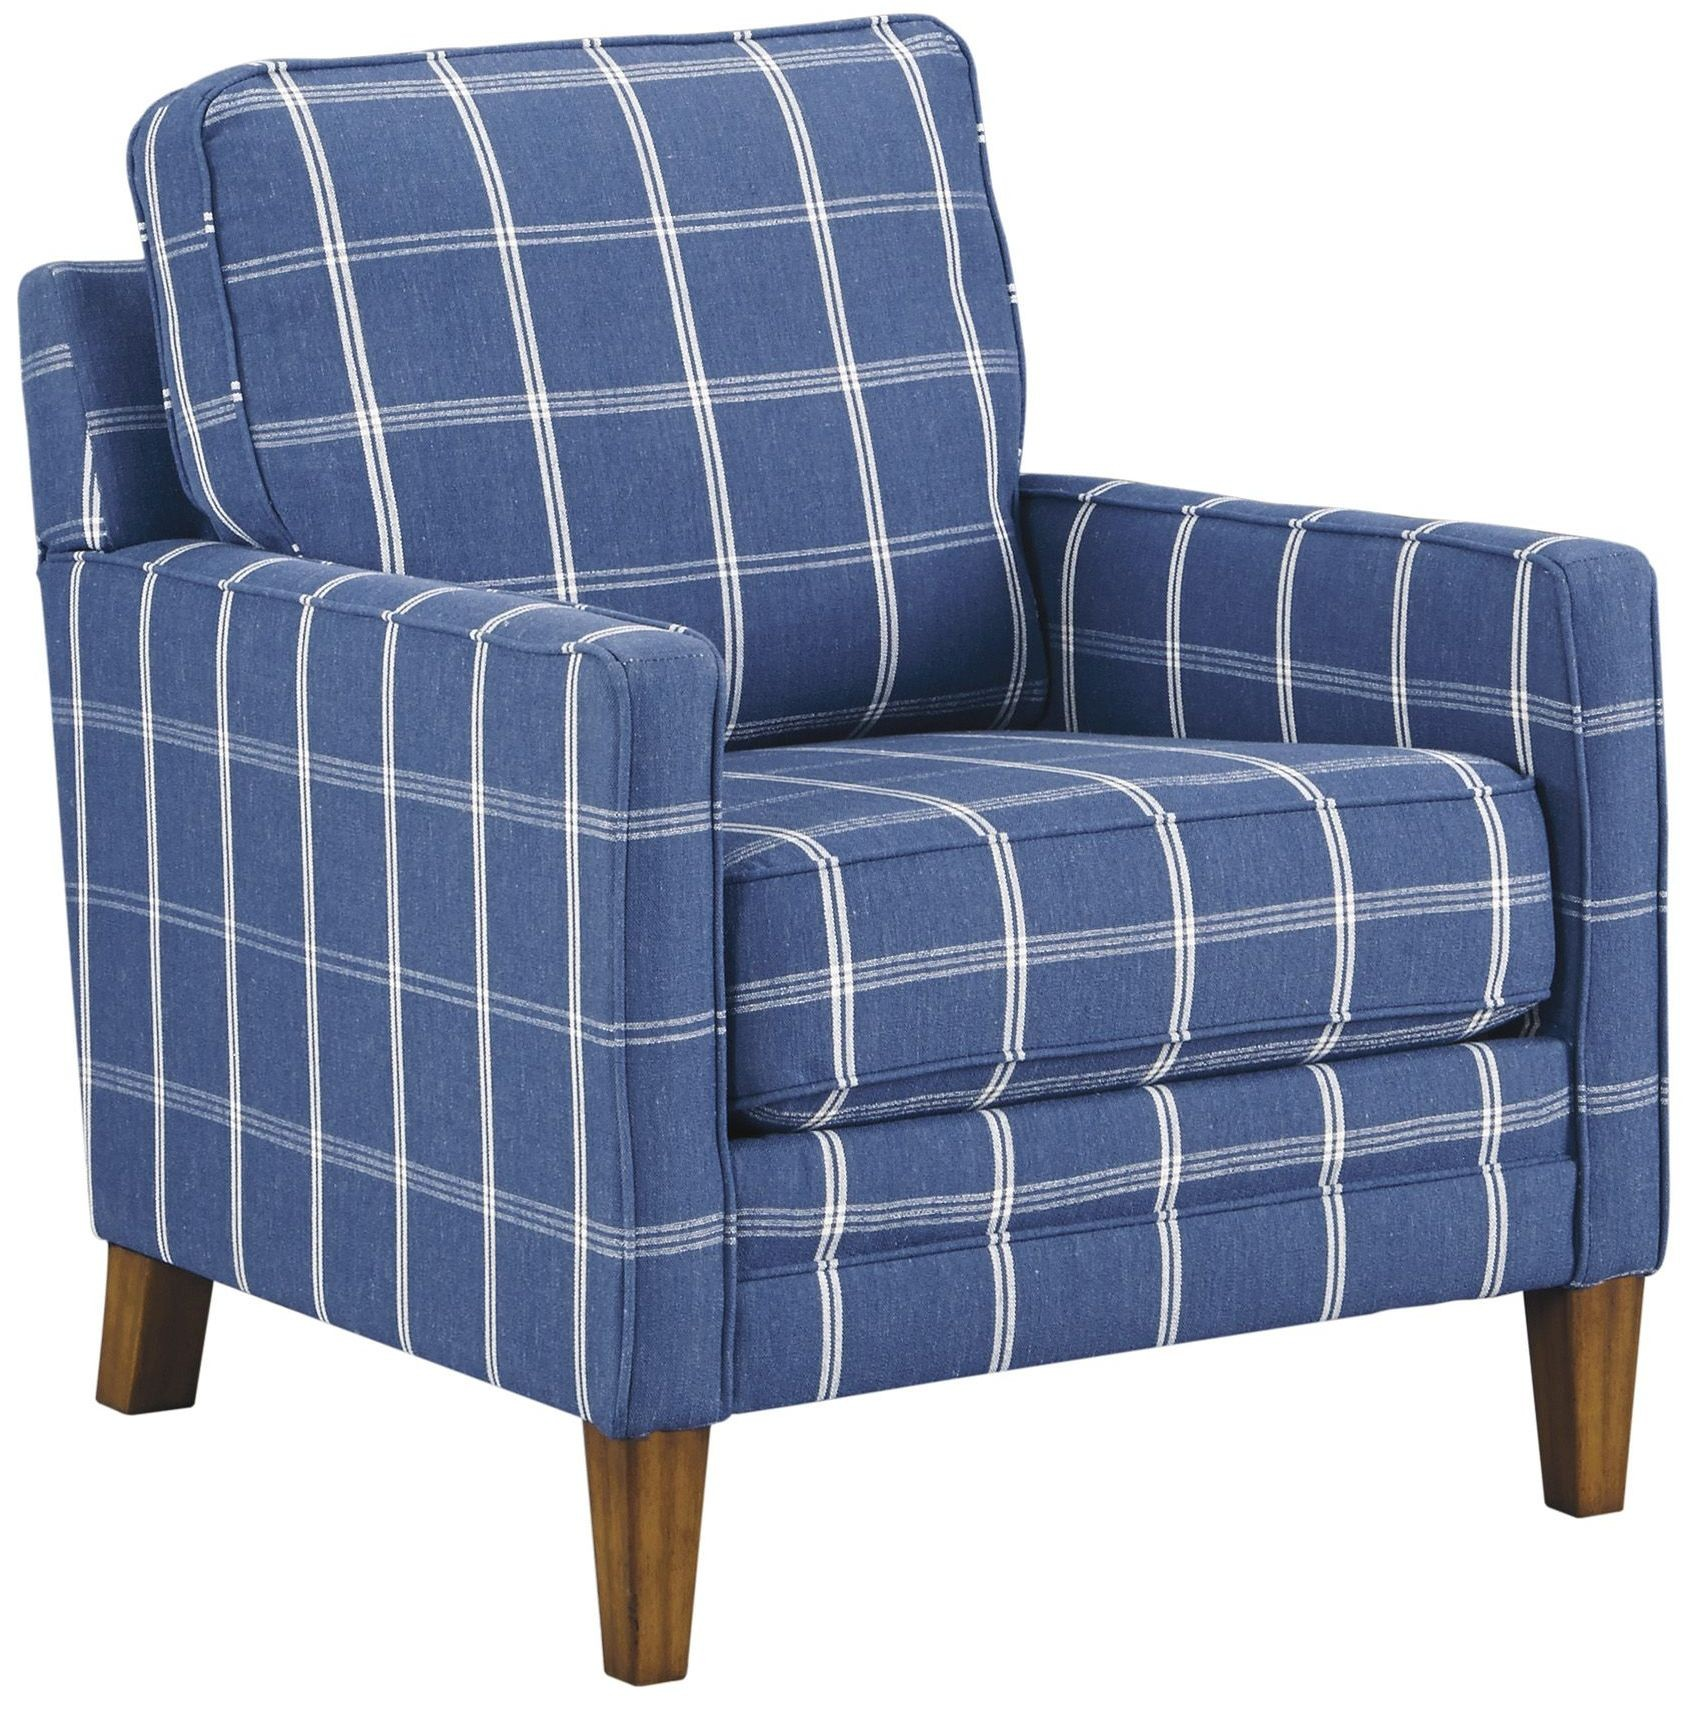 Adderbury Sky Accent Chair, 1440321, Ashley